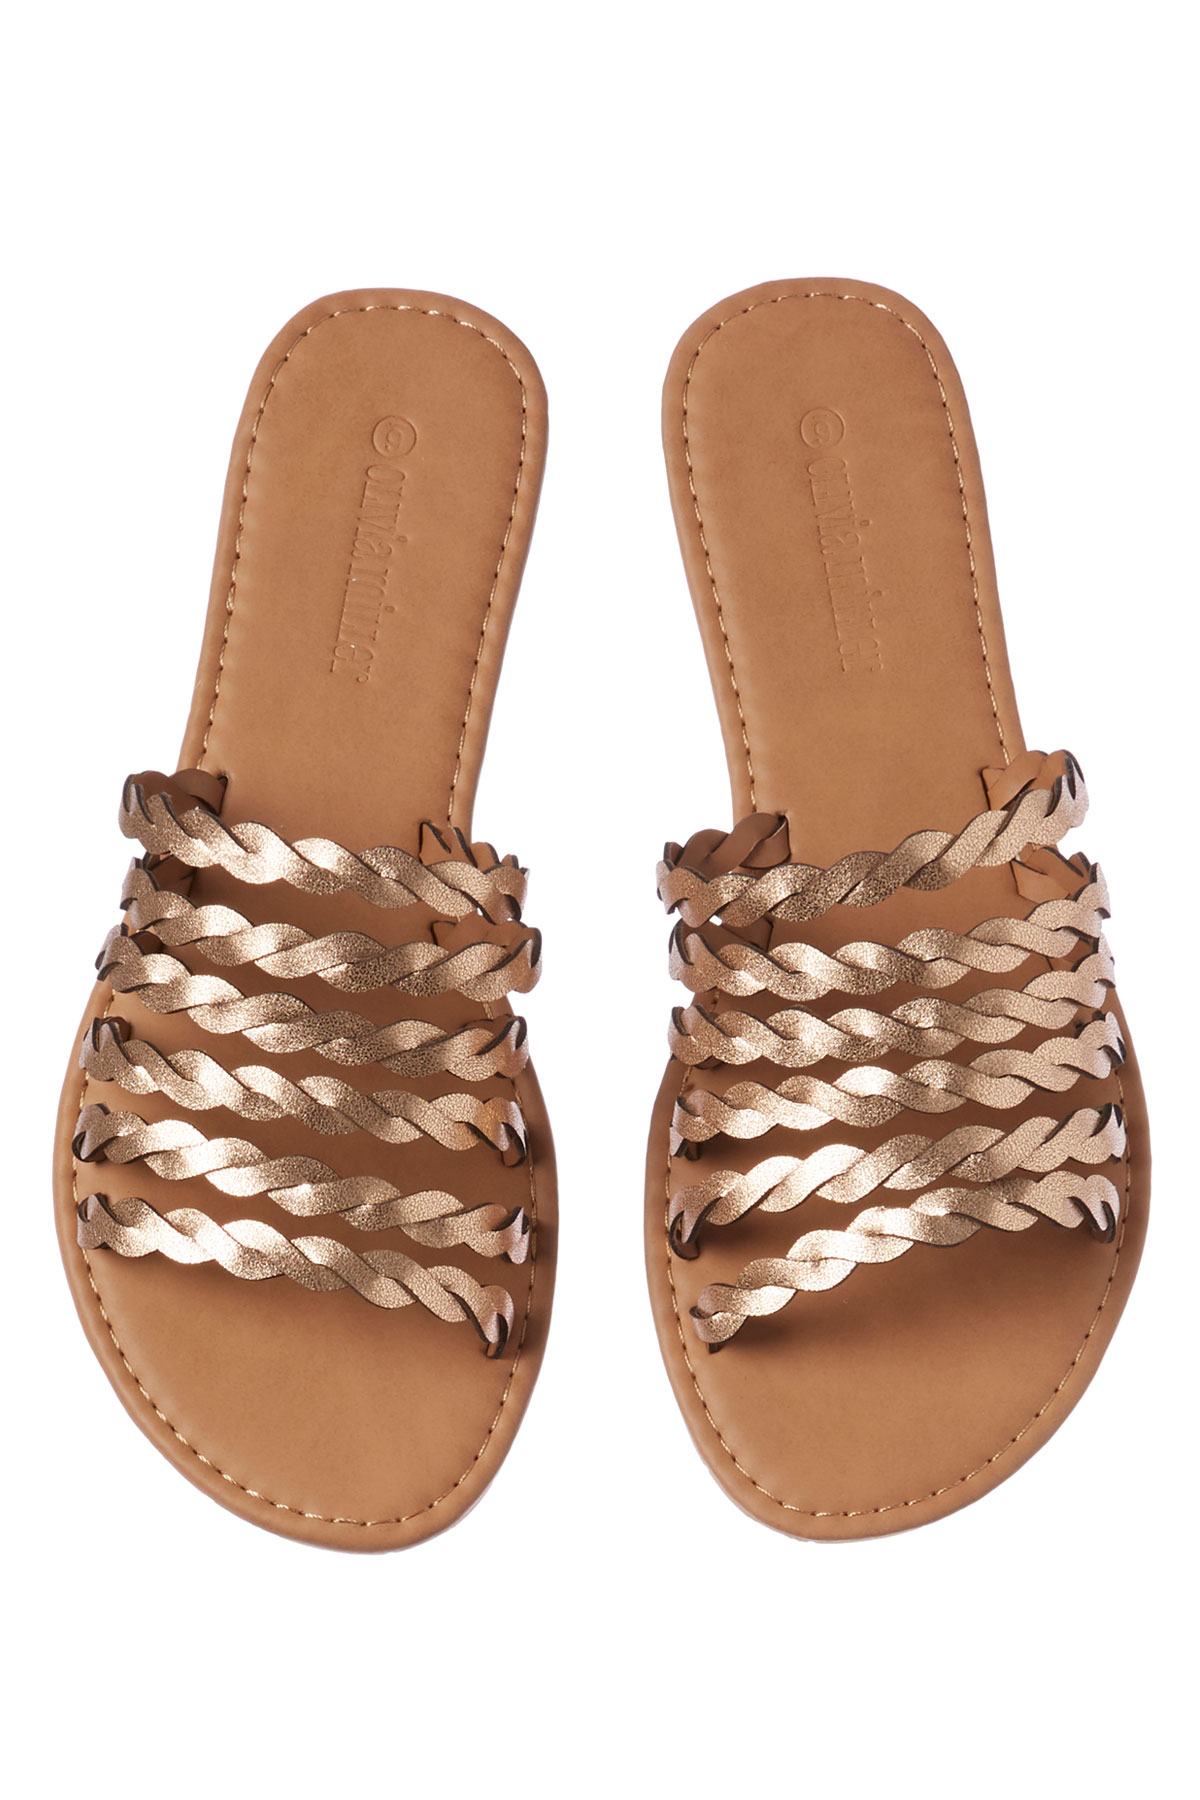 Metallic Strappy Slides - Rose Gold 1